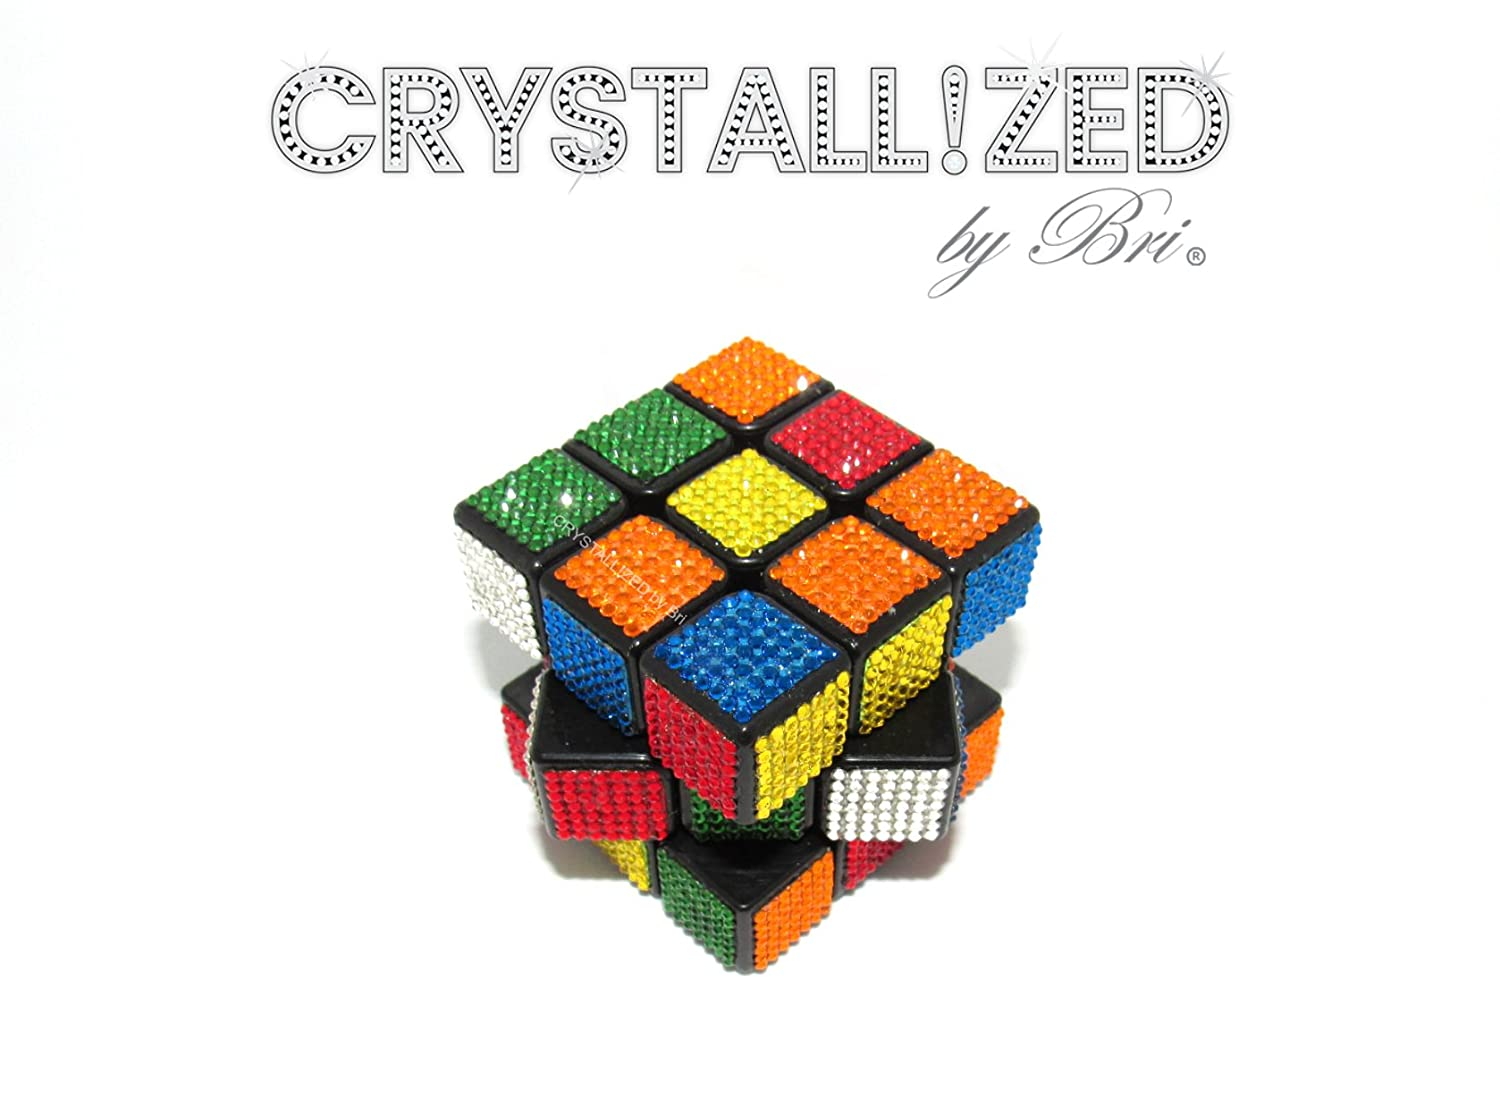 Swarovski CRYSTALLIZED 3x3x3 Speed Cube Game Size like Rubiks Playable Bling Crystals